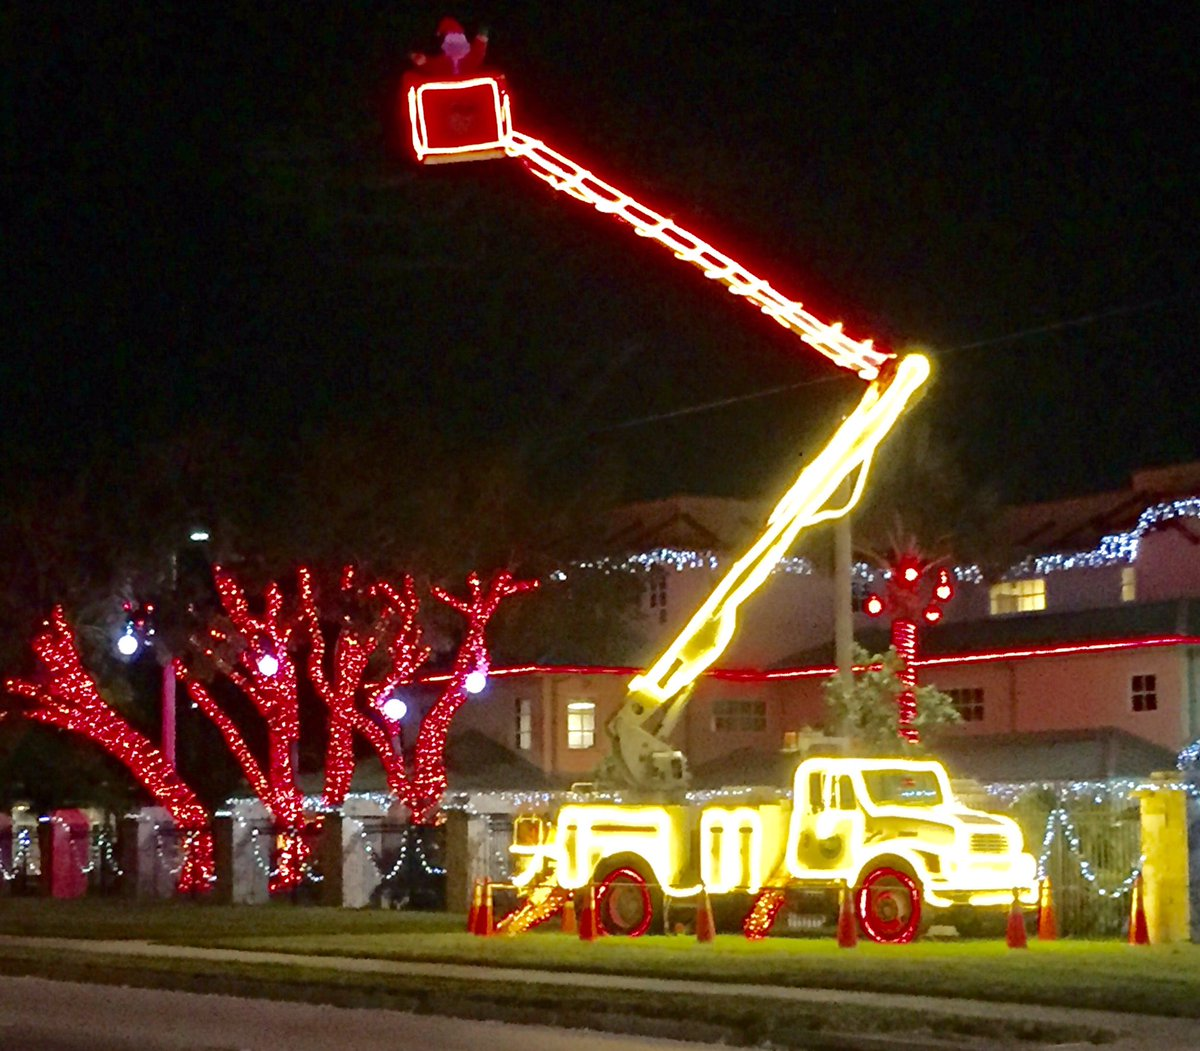 MERRY CHRISTMAS!  Thankful for the real SANTA @FLKeysElectric for their round the clock hard work by land &amp; sea restoring POWER &amp; HOPE to the Florida Keys! They also get our vote for best Christmas Lights! #IrmaRecovery #conchstrong  #FLKeys<br>http://pic.twitter.com/pzdjvpamOE